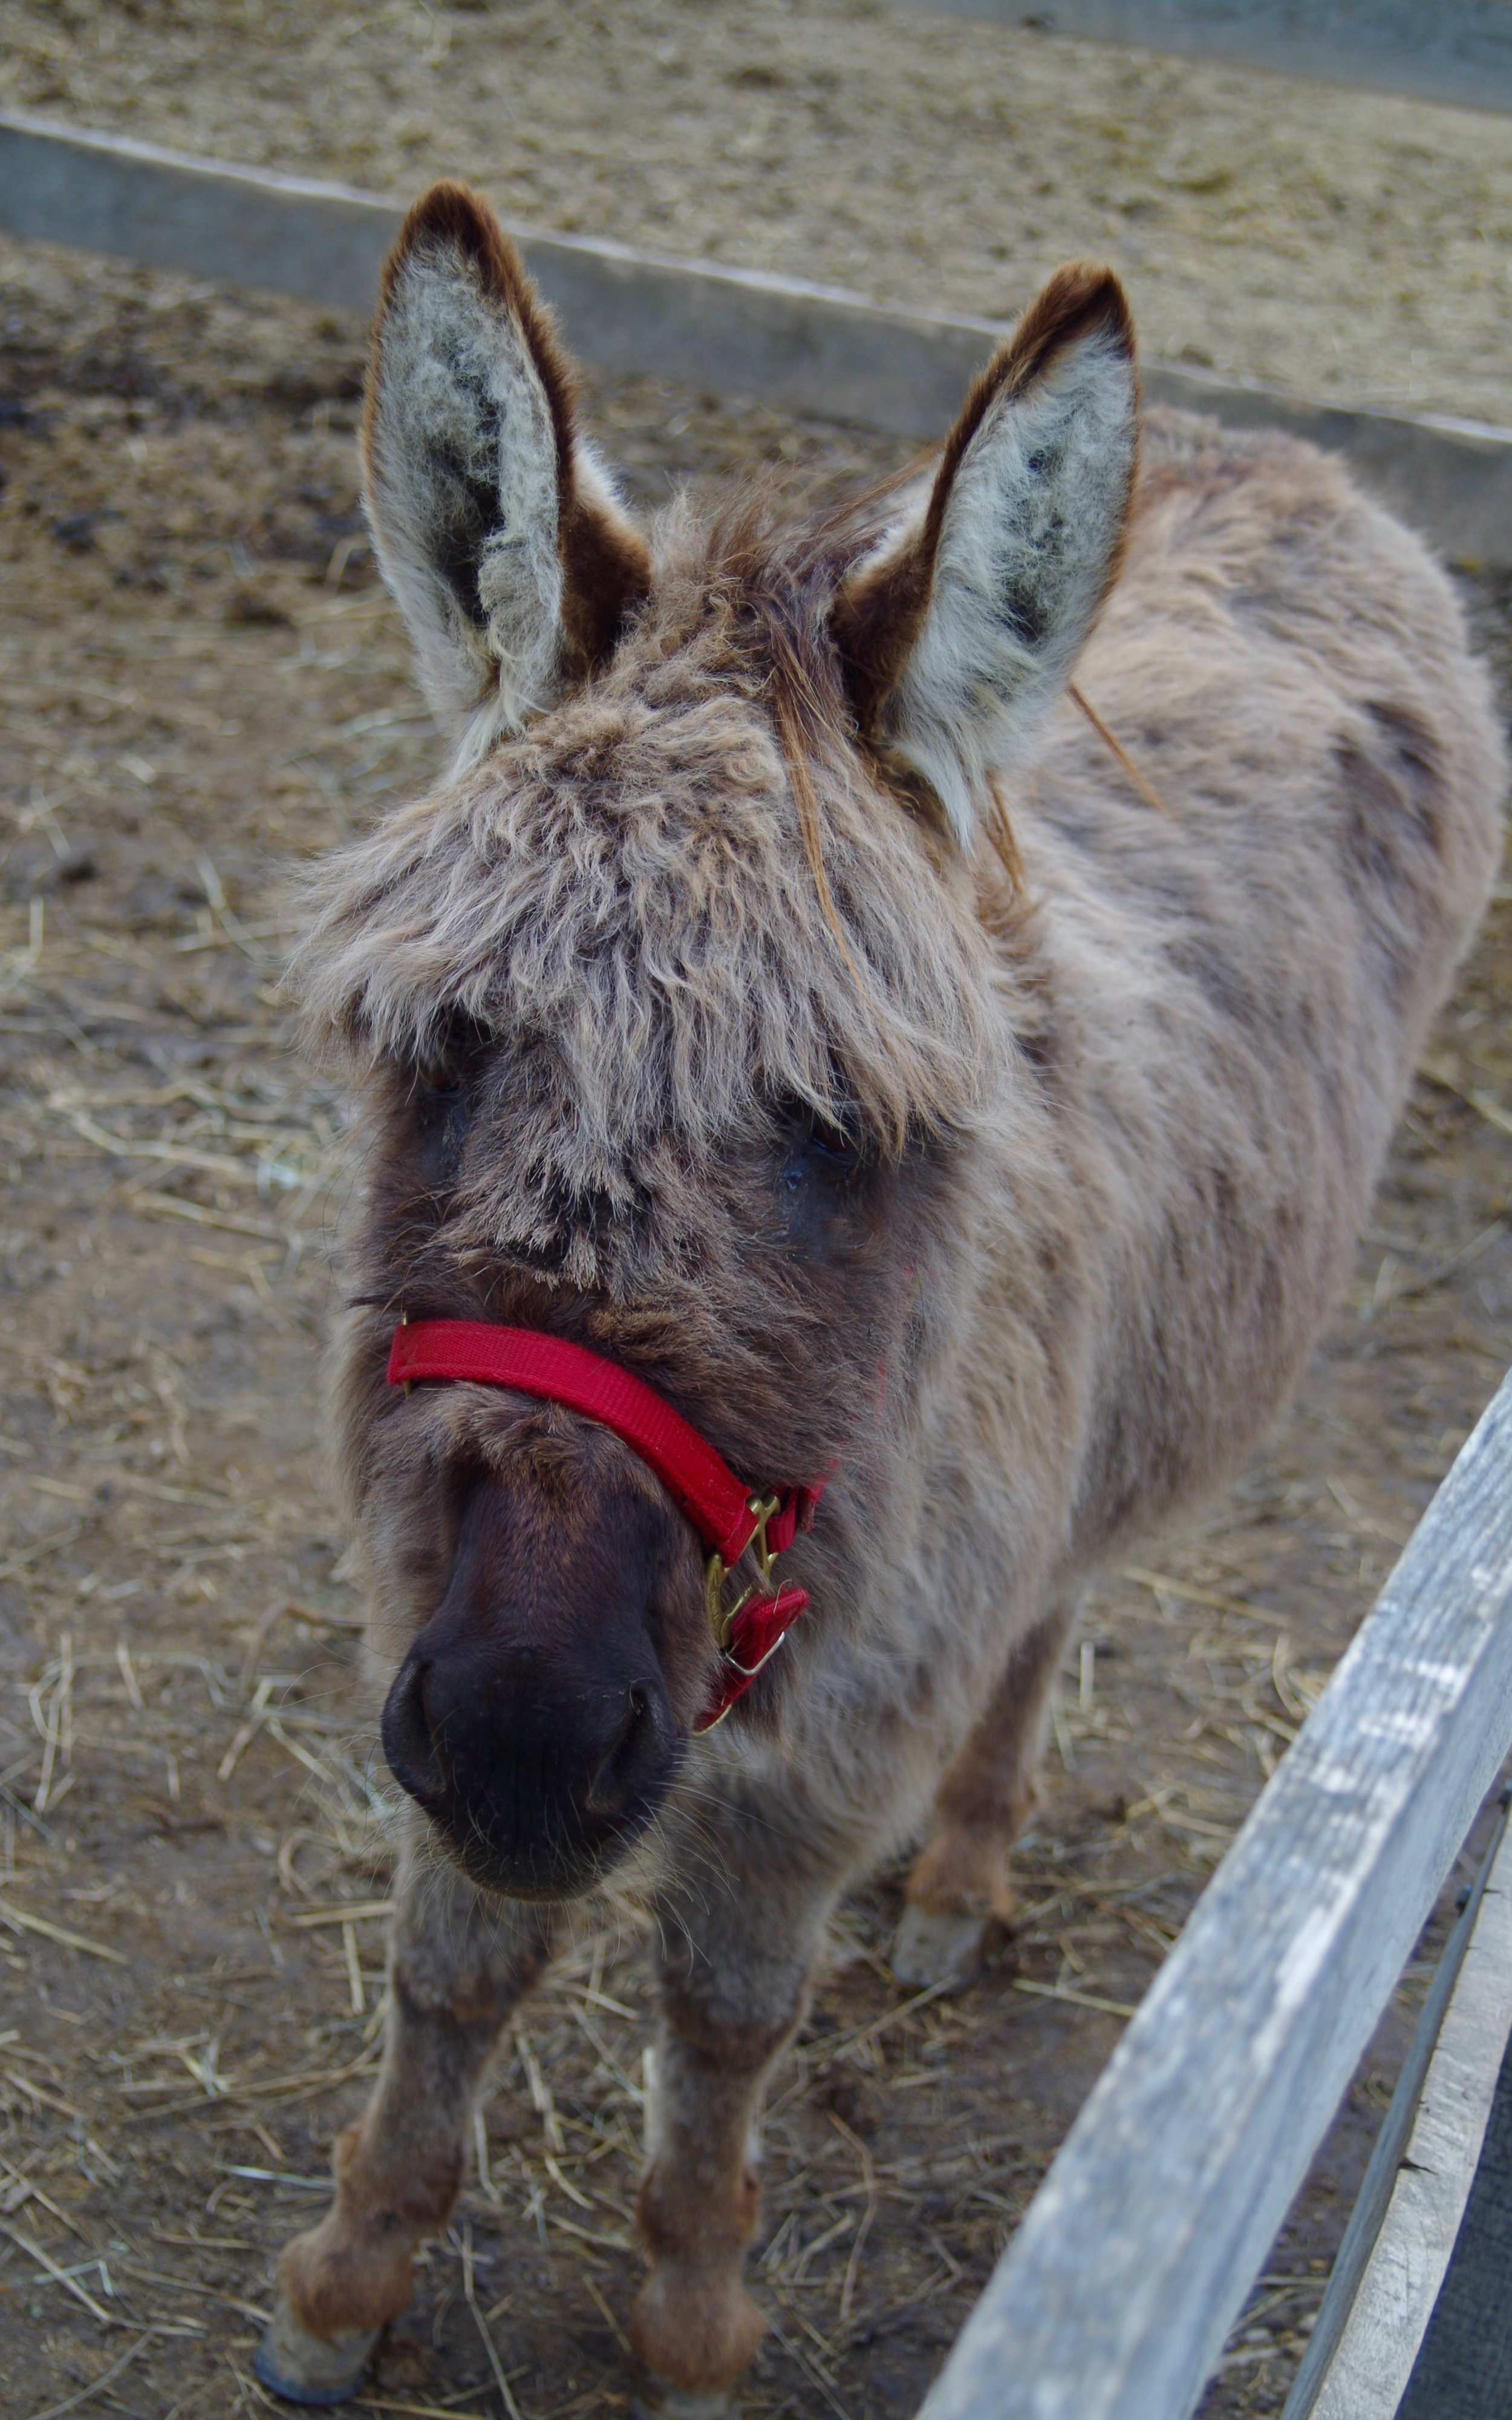 Rabbit - Half Sponsor: Jackie DeSpiritoBreed: Minature DonkeyRabbit is the farm watchdog braying a greeting when you approach her paddock. She is an excellent addition to our ground therapy program and is a great ambassador in our outreach programs.